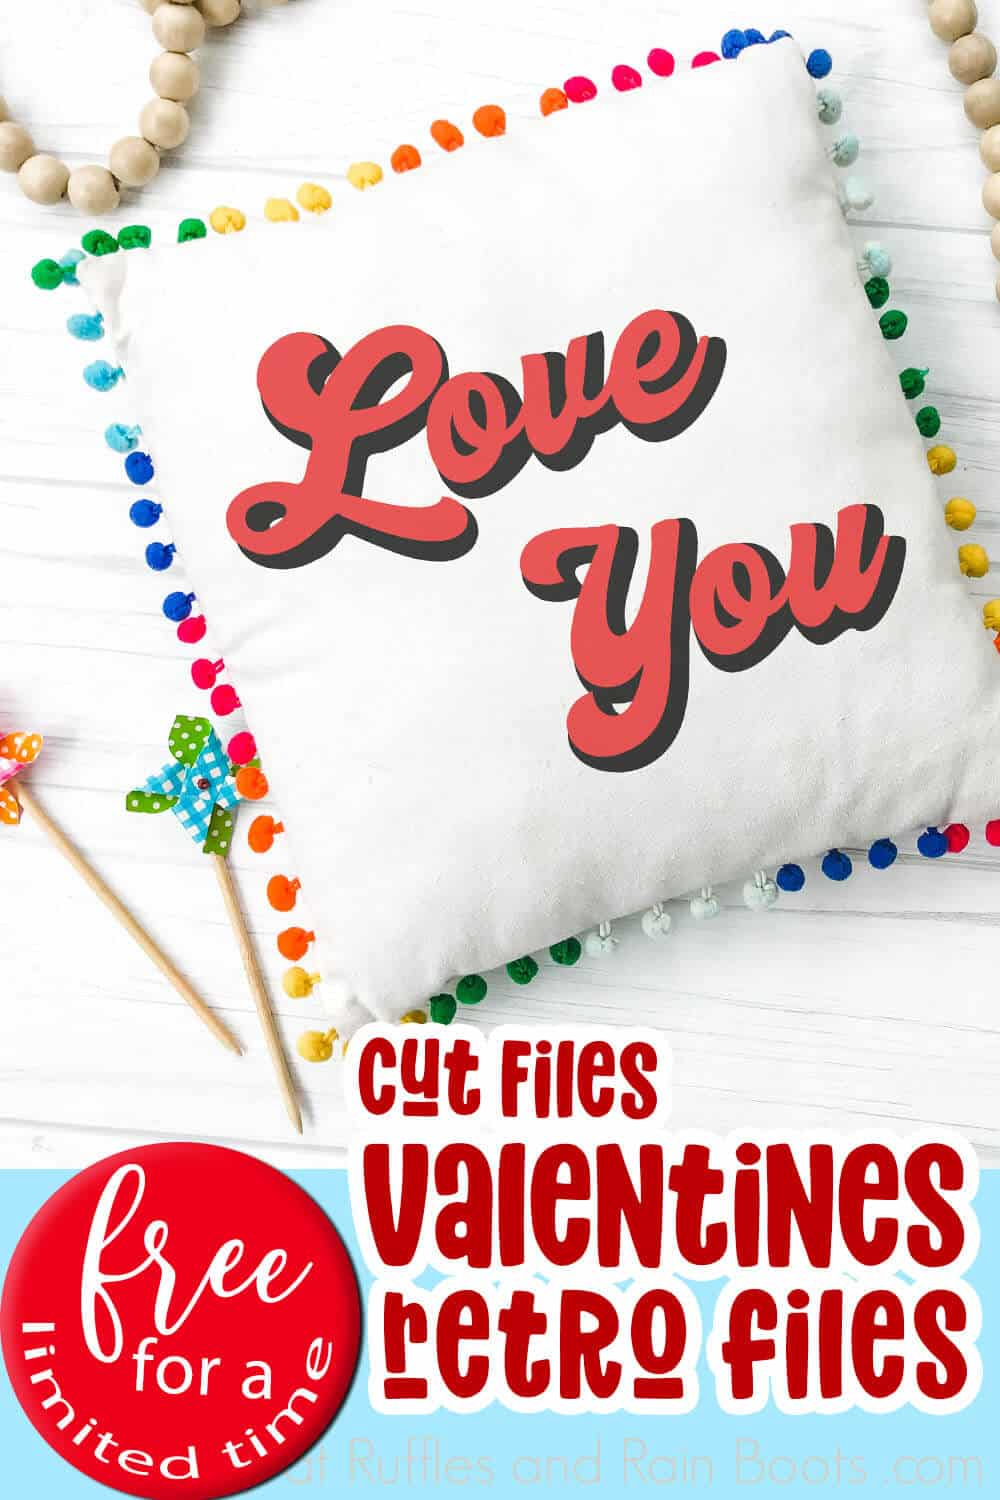 closeup of pillow iwth love you cut file for valentines with text which reads cut files valentnes retro files